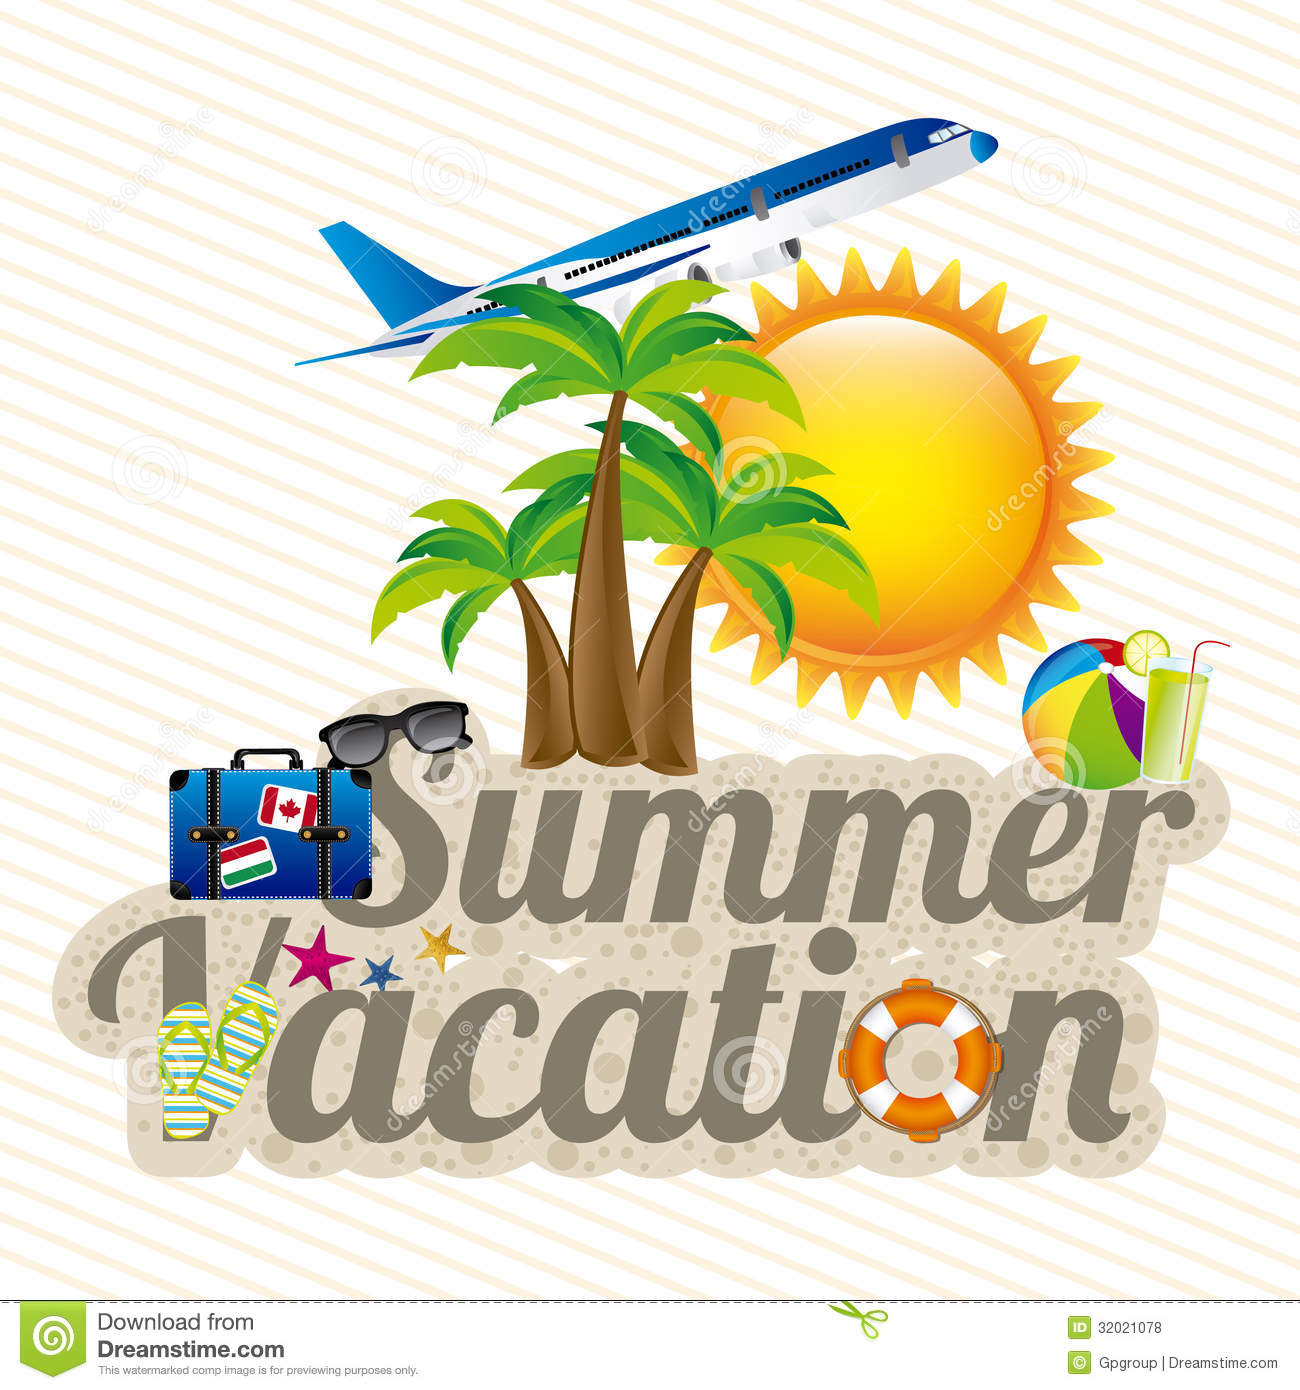 Summer vacation design over white background vector illustration.